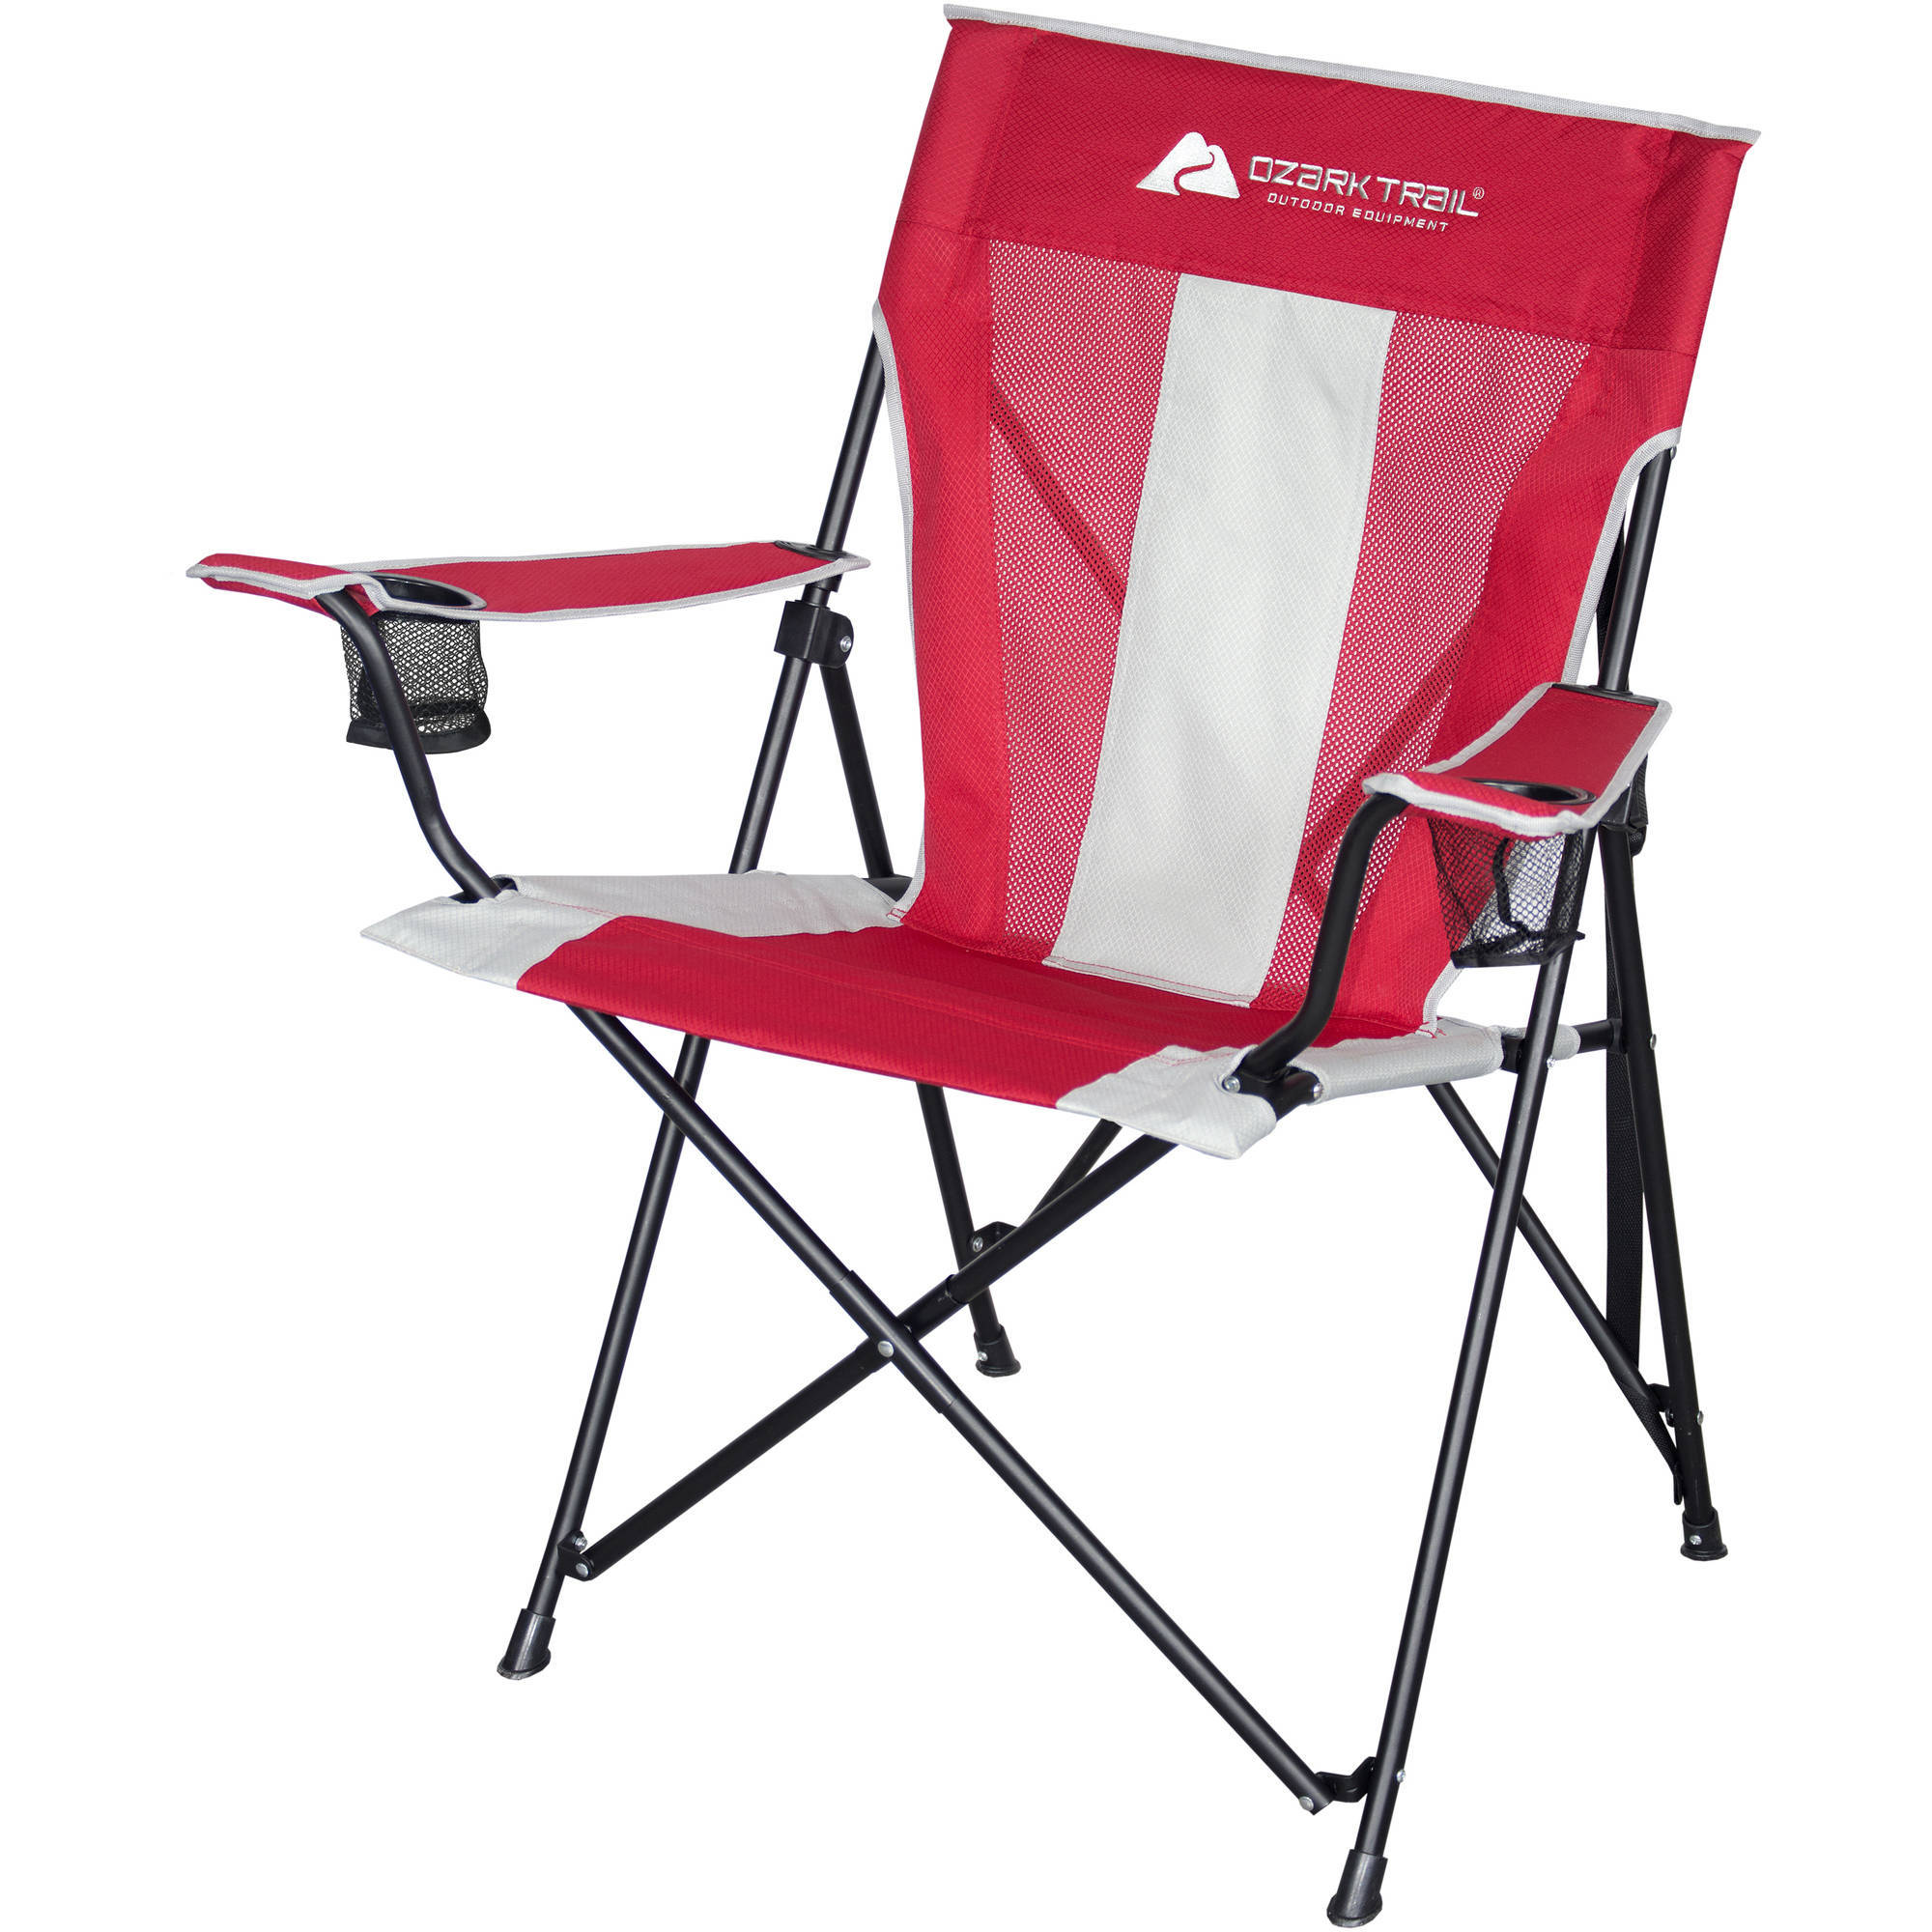 Click here to buy Ozark Trail Tension Camp Chair.